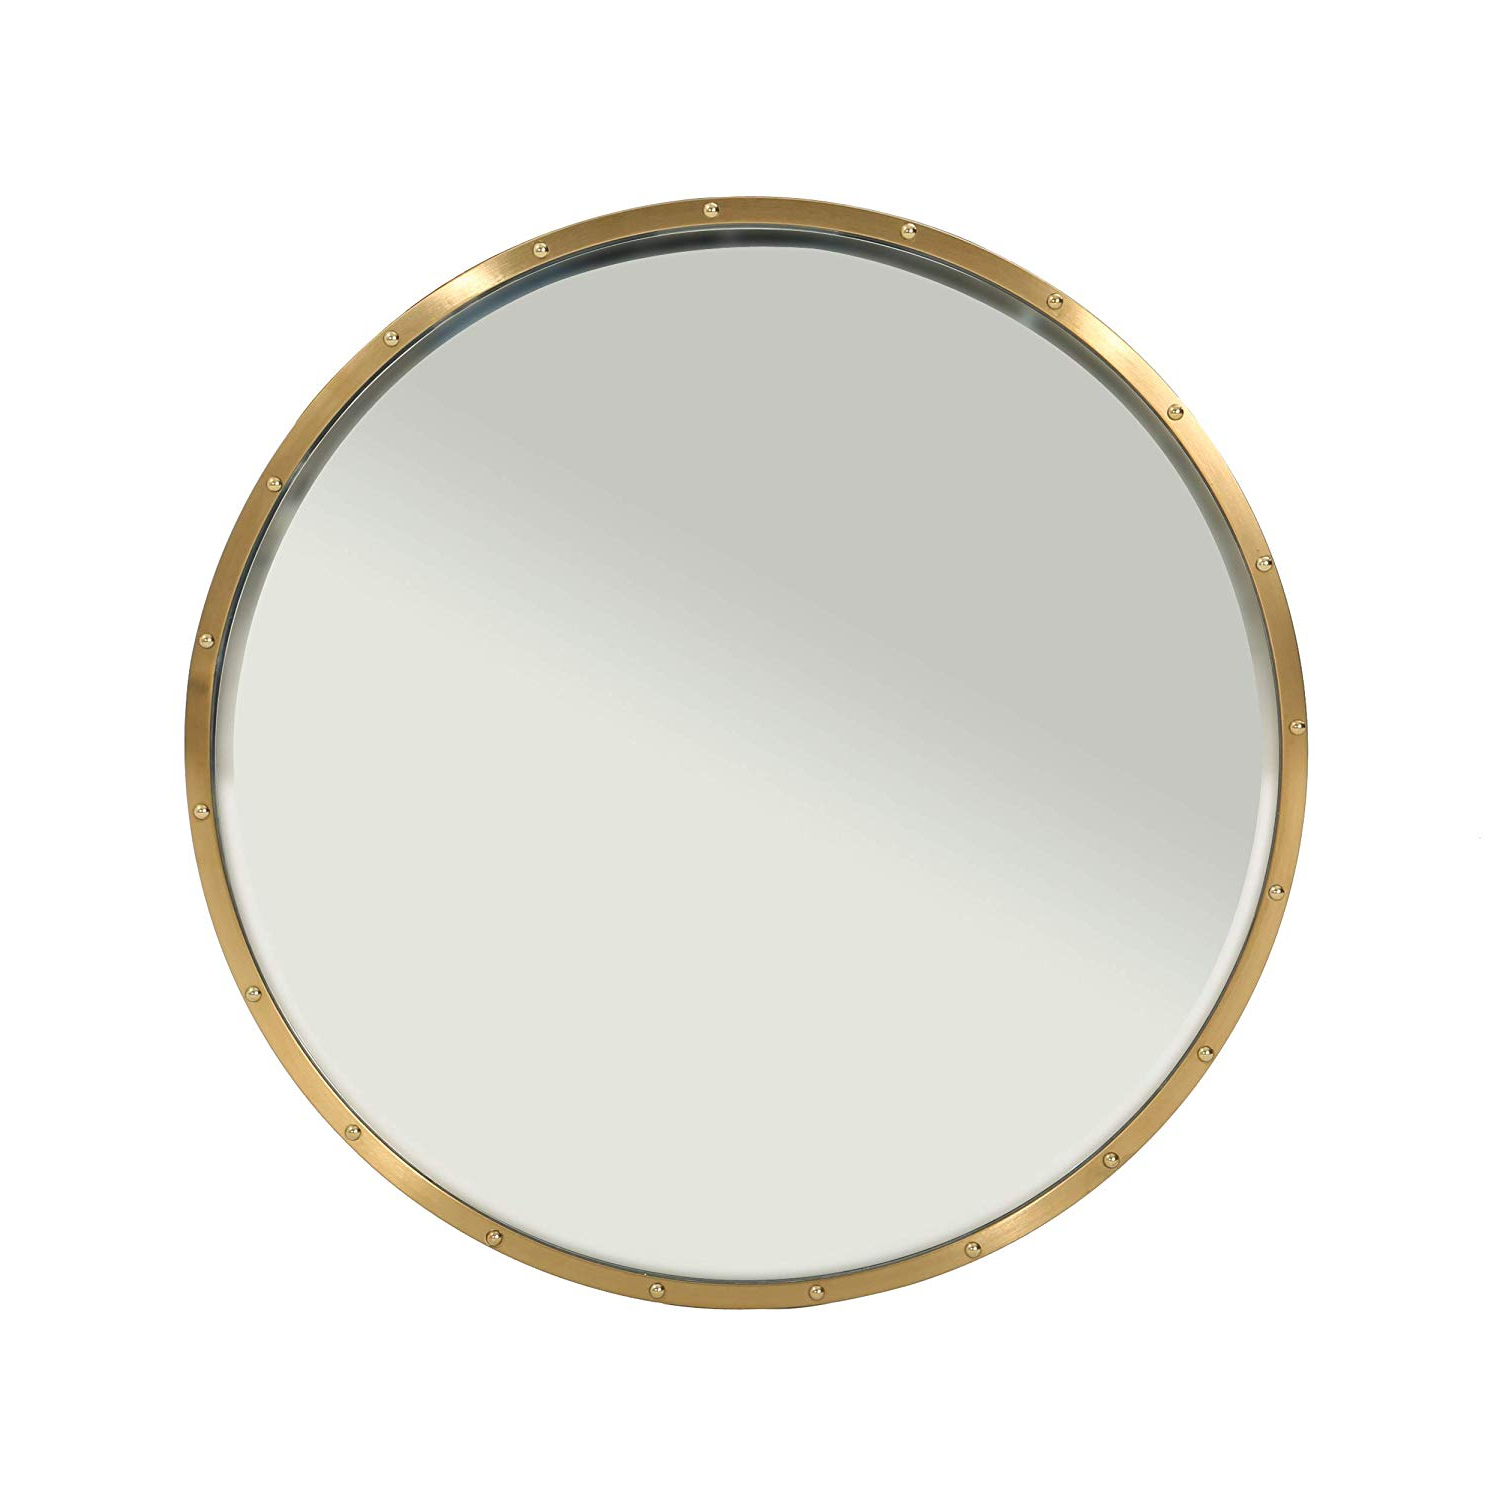 2020 Stainless Steel Wall Mirrors With Amazon: Great Deal Furniture Malina Glam Circular Wall (View 18 of 20)